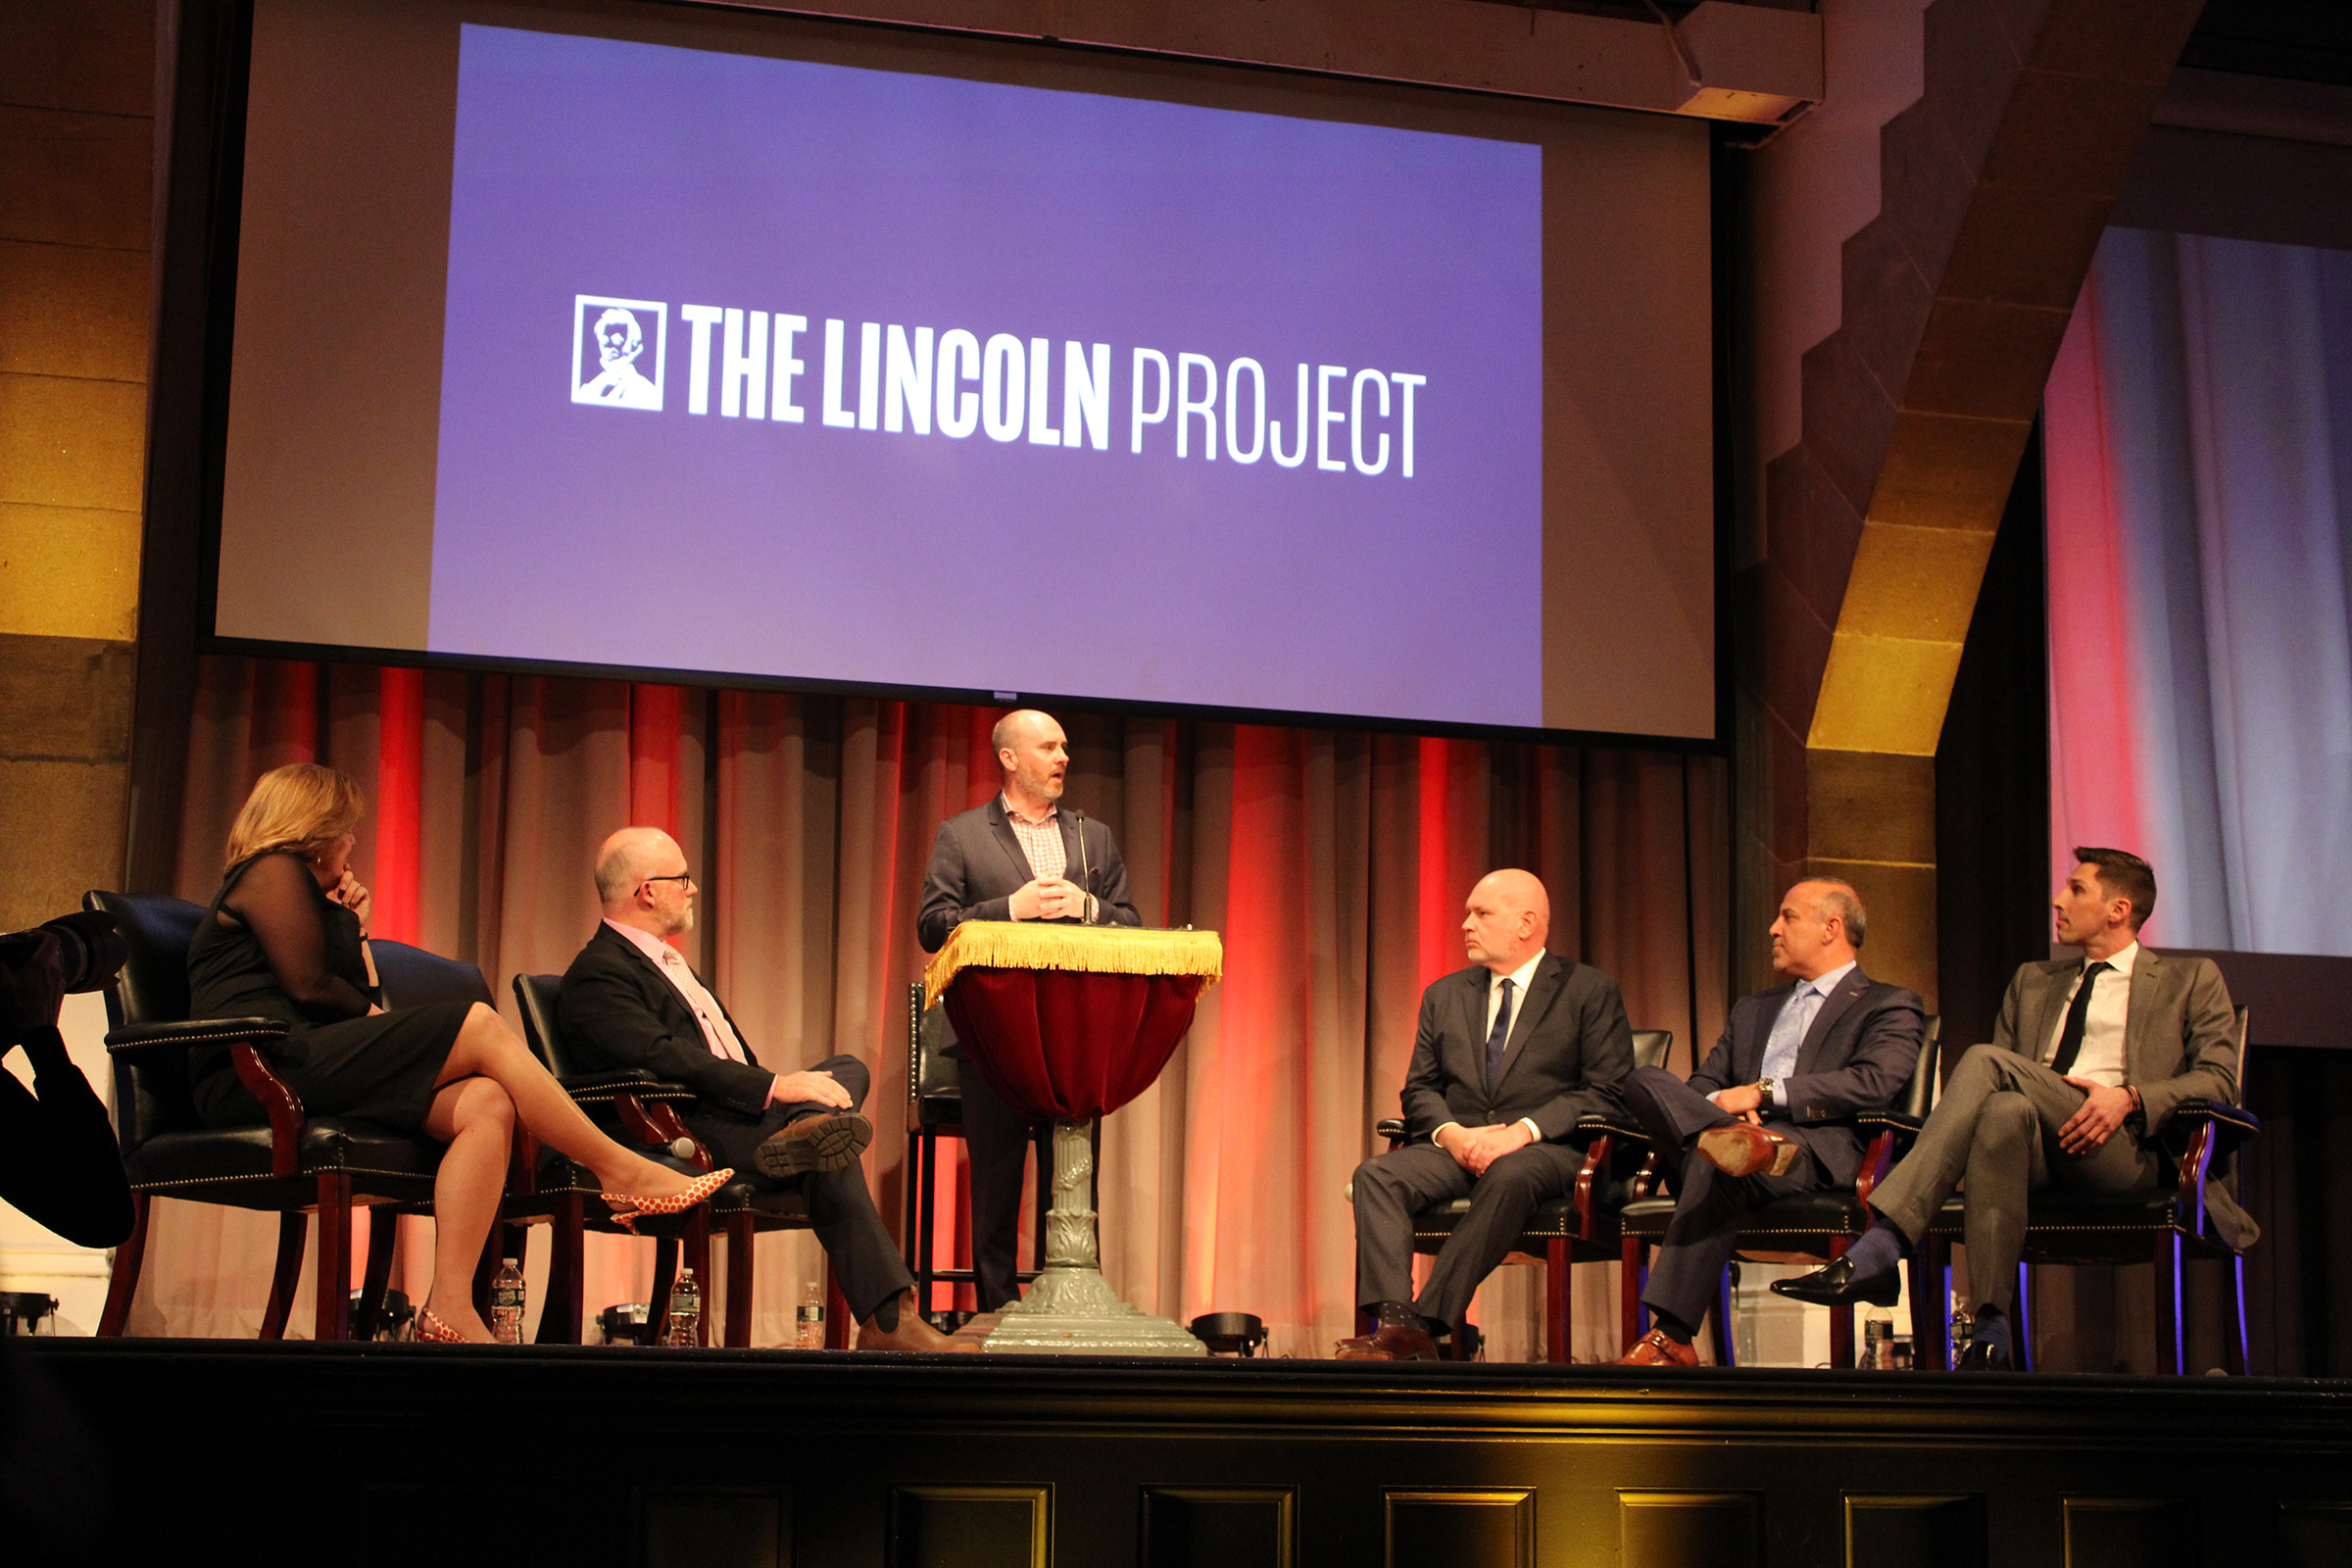 The Lincoln Project's ads criticizing the President's performance have helped it raise nearly $20 million